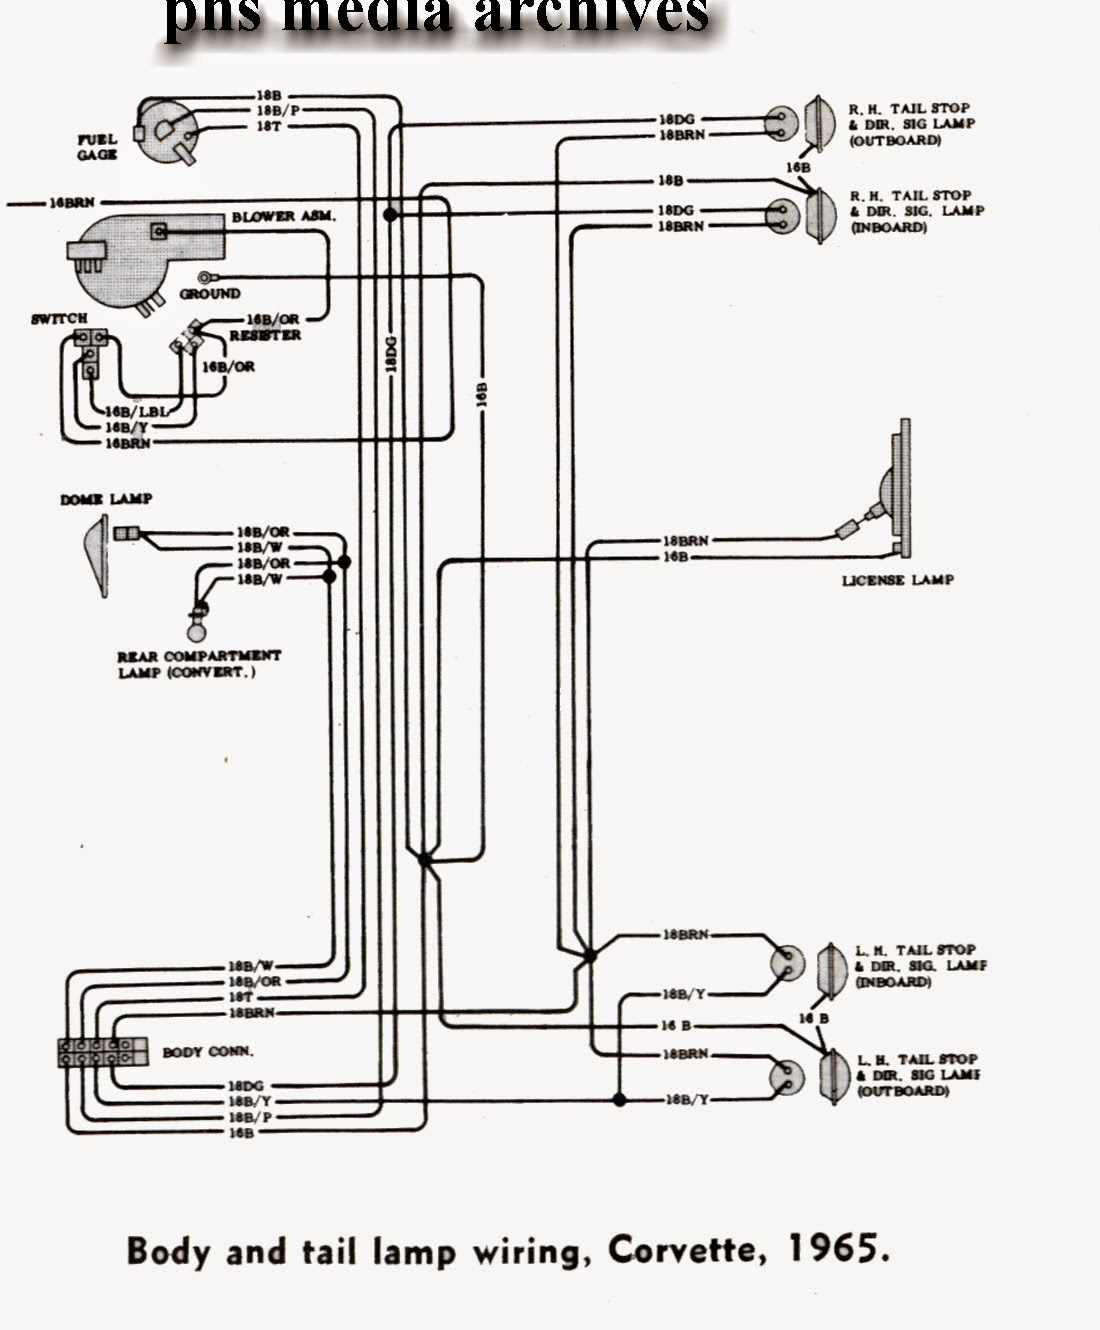 1965 Corvette Fuse Box Diagram Wiring 1964 Tech Series Chevrolet Diagrams Engine Rh Phscollectorcarworld Blogspot Com Compartment 64 Wiper